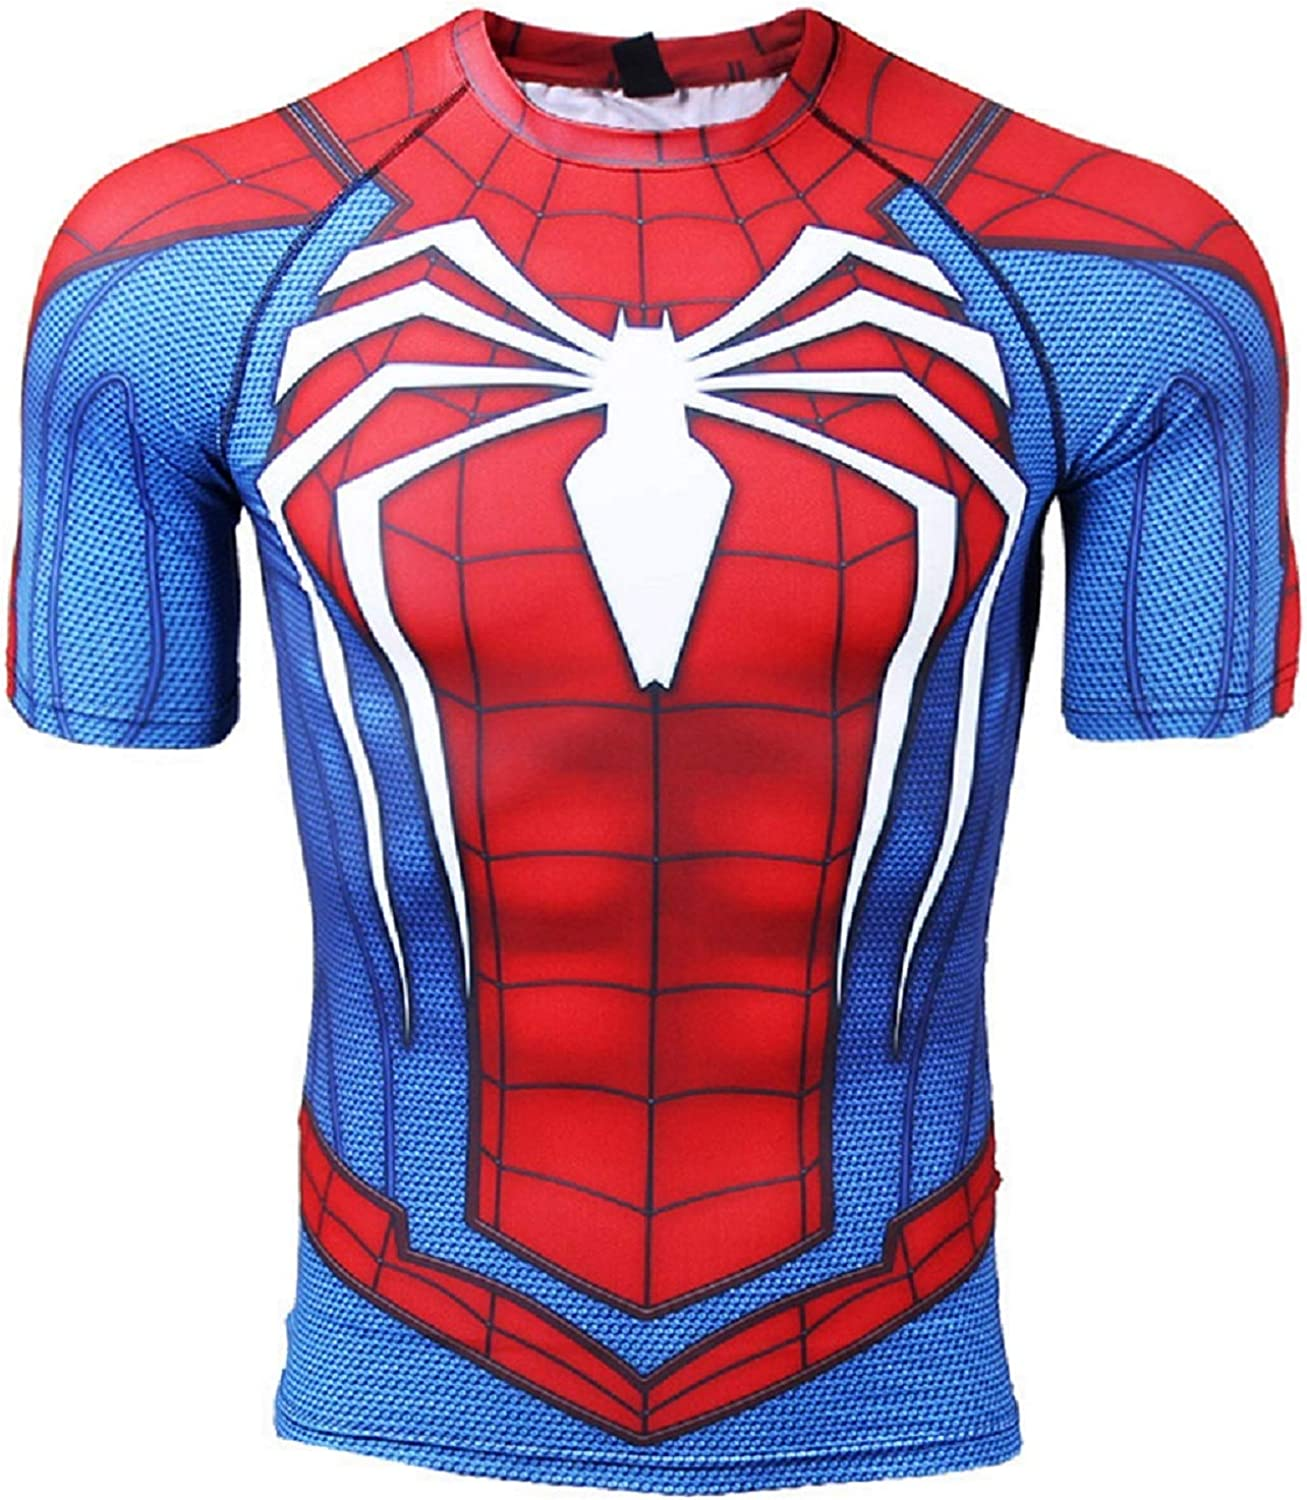 Short Sleeve Spider-Man Compression Shirts for Men 3D Printed Tee